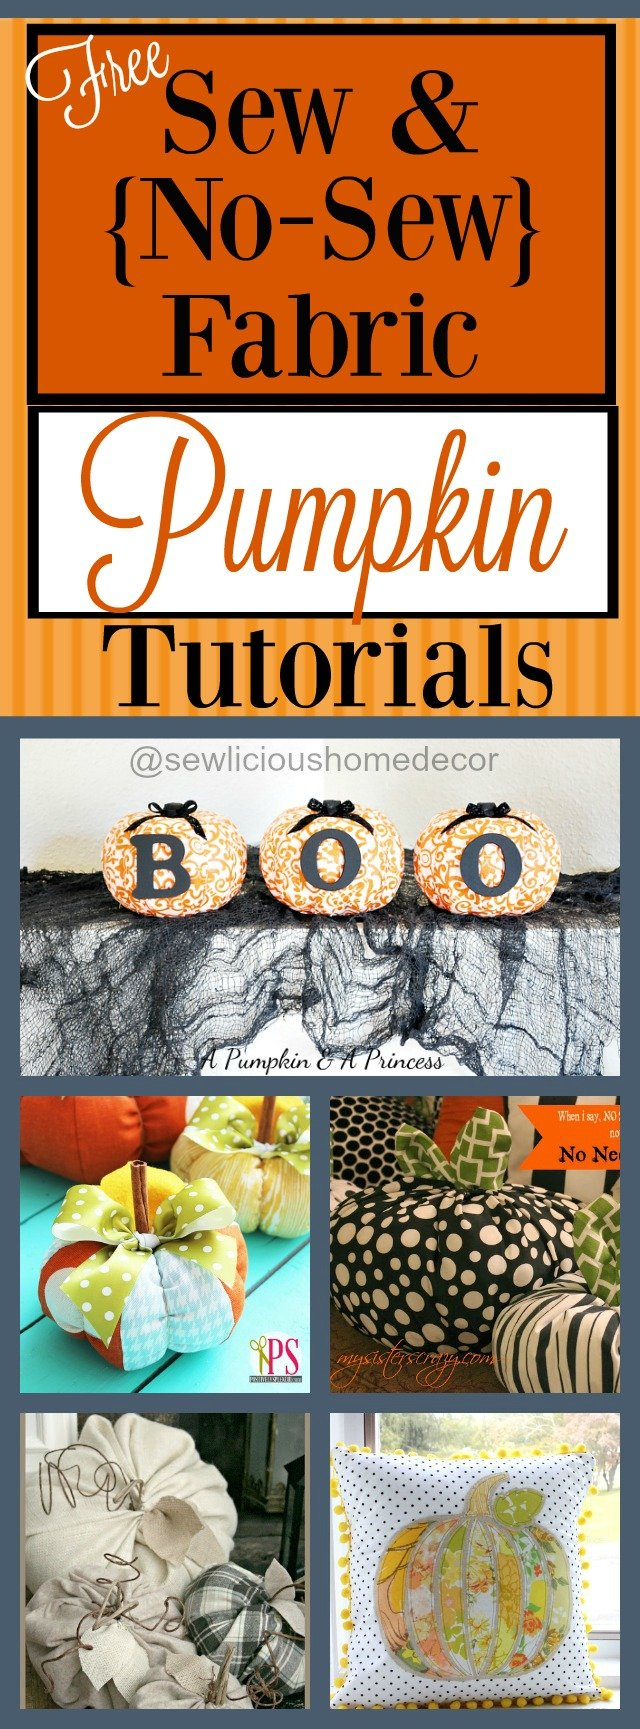 Free Sew and No Sew Pumpkin Tutorials at sewlicioushomedecor.com